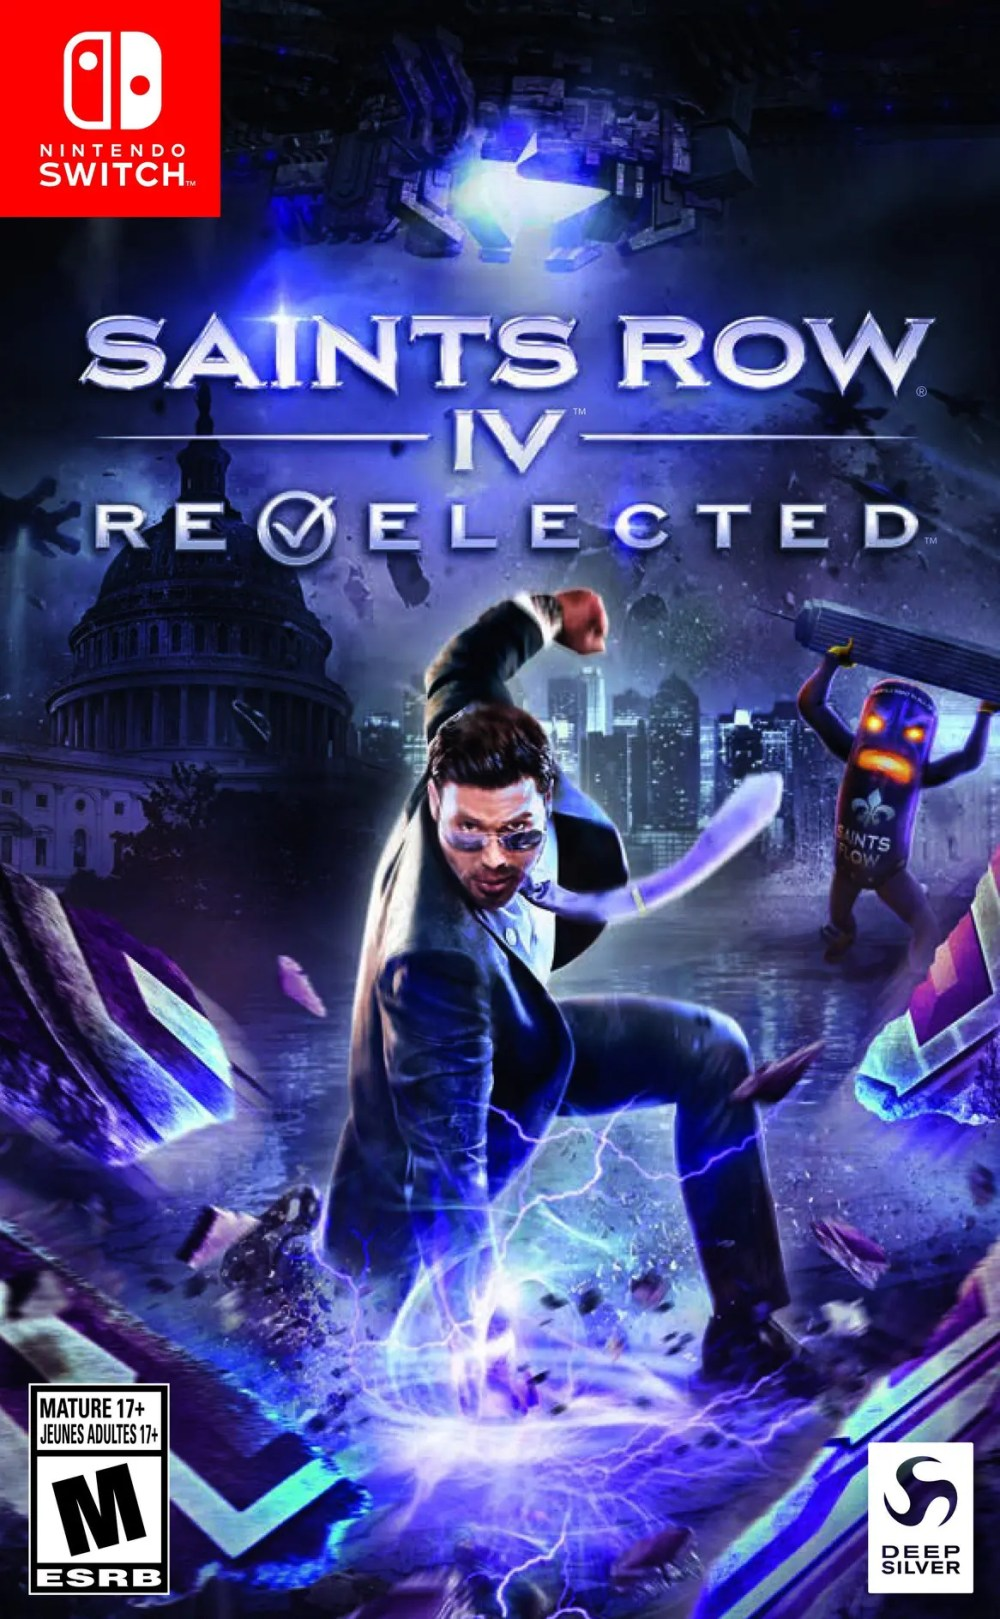 Saints Row IV: Re-Elected for Nintendo Switch